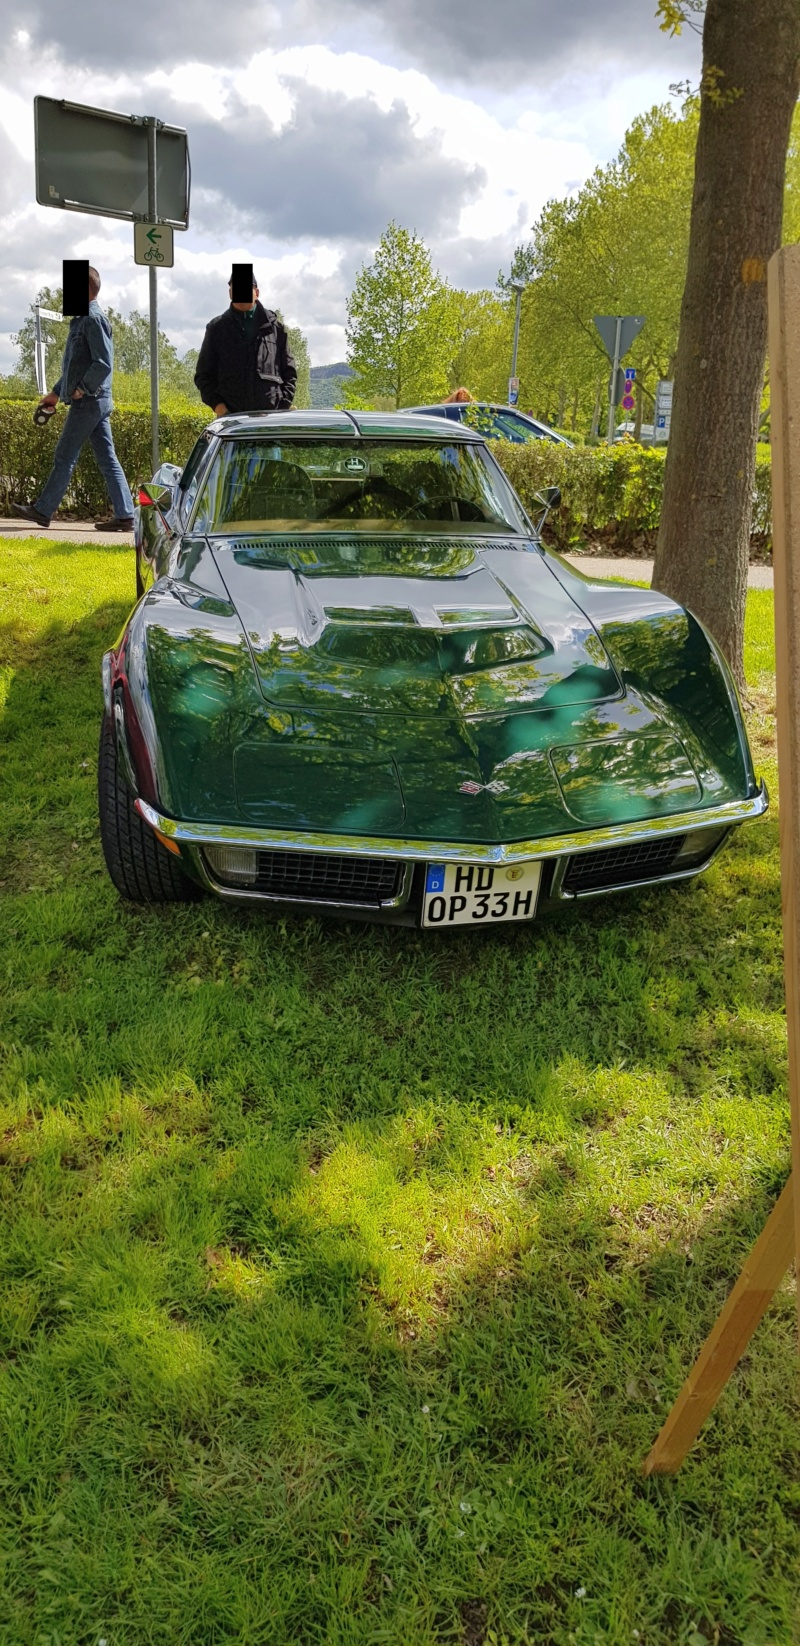 16. Corvette Sunday der Corvettenfreunde Kurpfalz in Ladenburg 5.5.2019 20190527